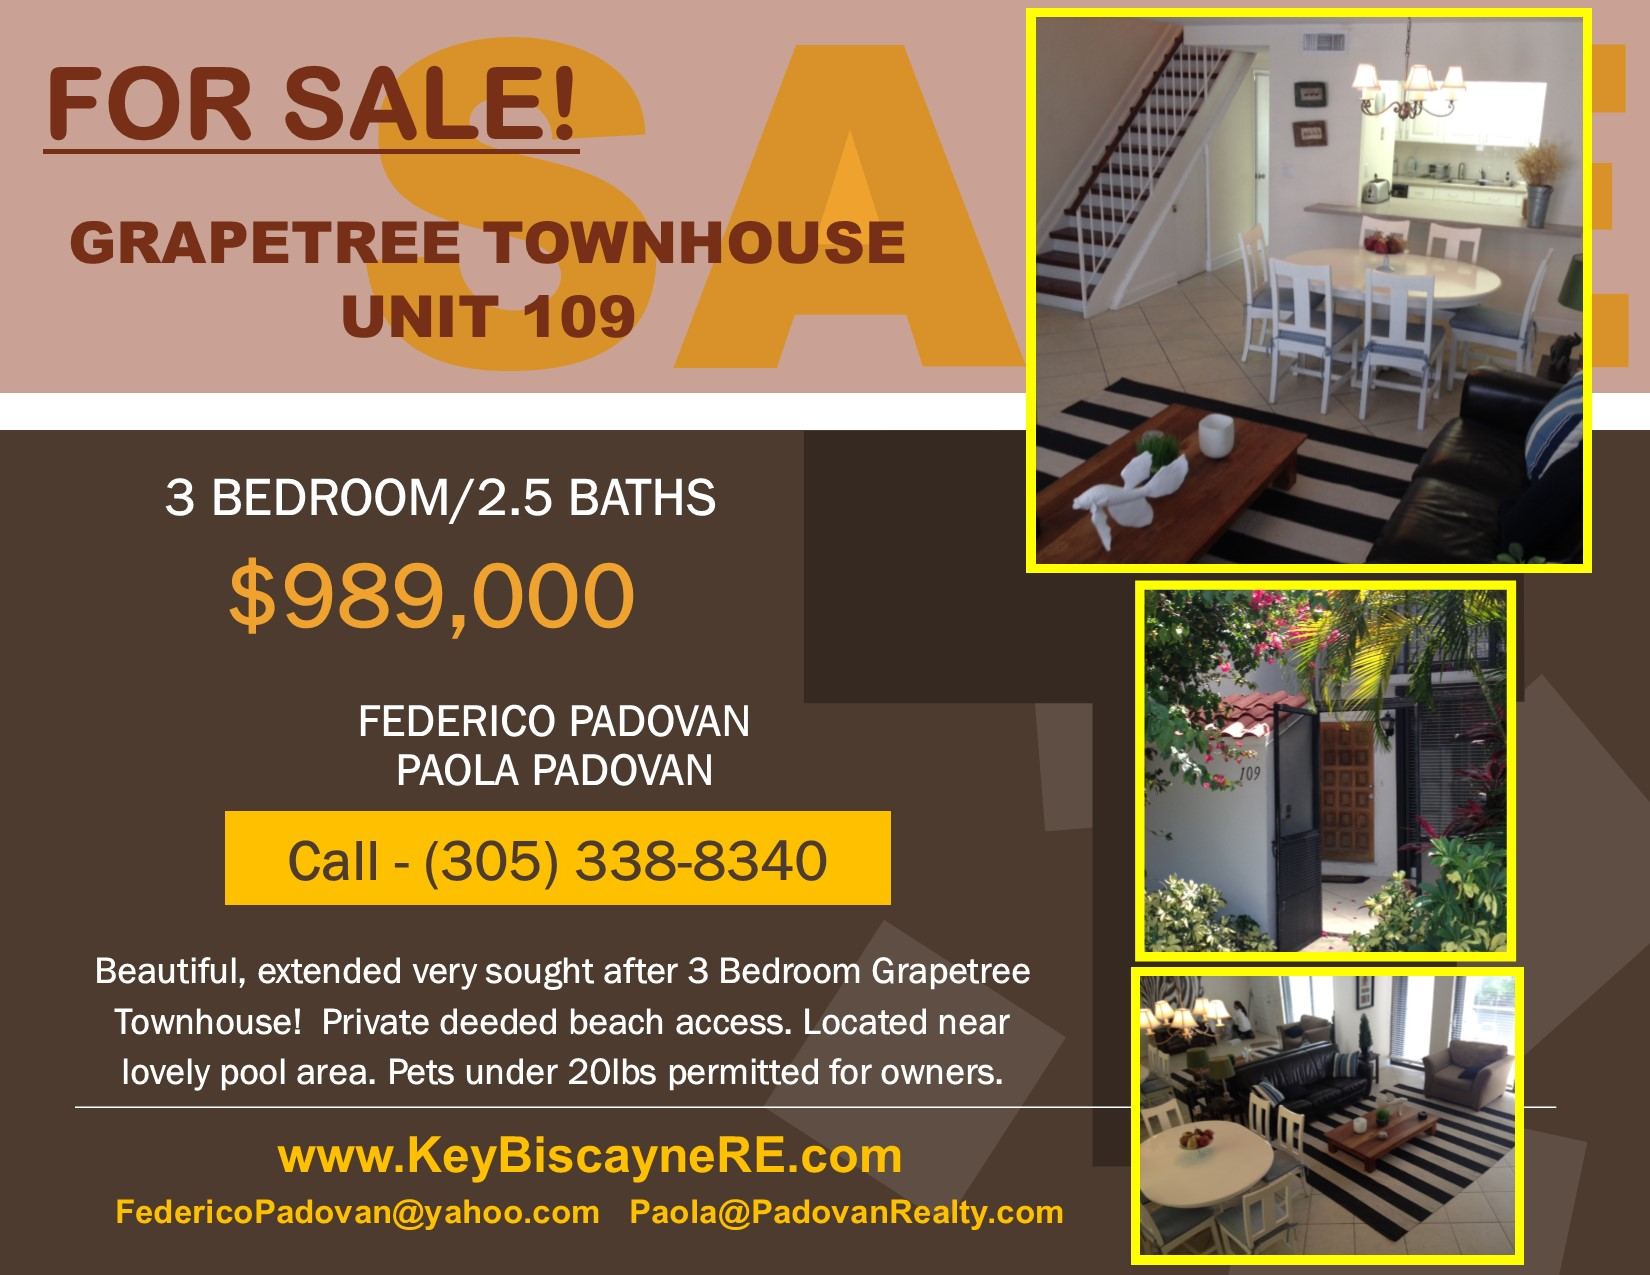 NEW LISTING! GRAPETREE TOWNHOUSE UNIT 109